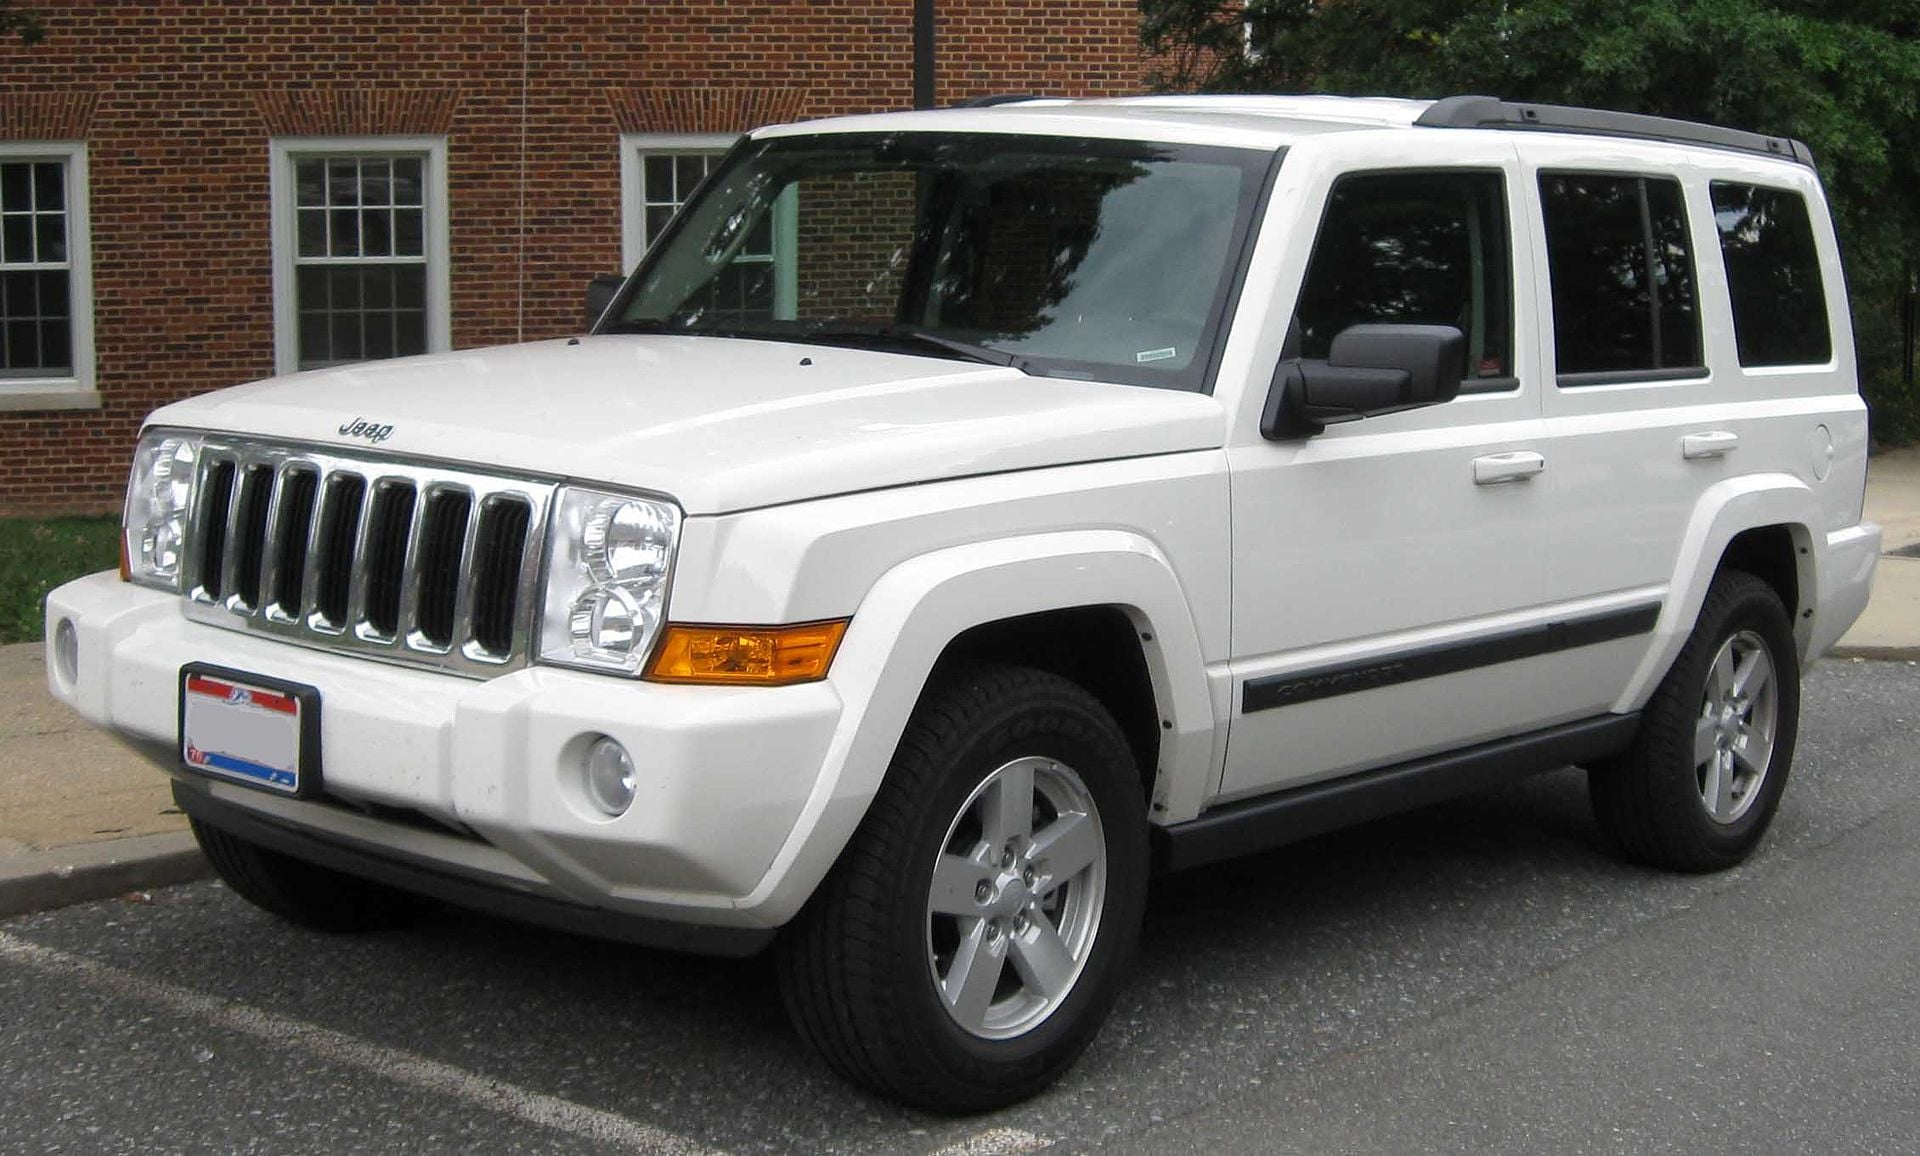 Used Jeep Commander - Dave Sinclair Chrysler Dodge Jeep Ram Eureka MO 63025